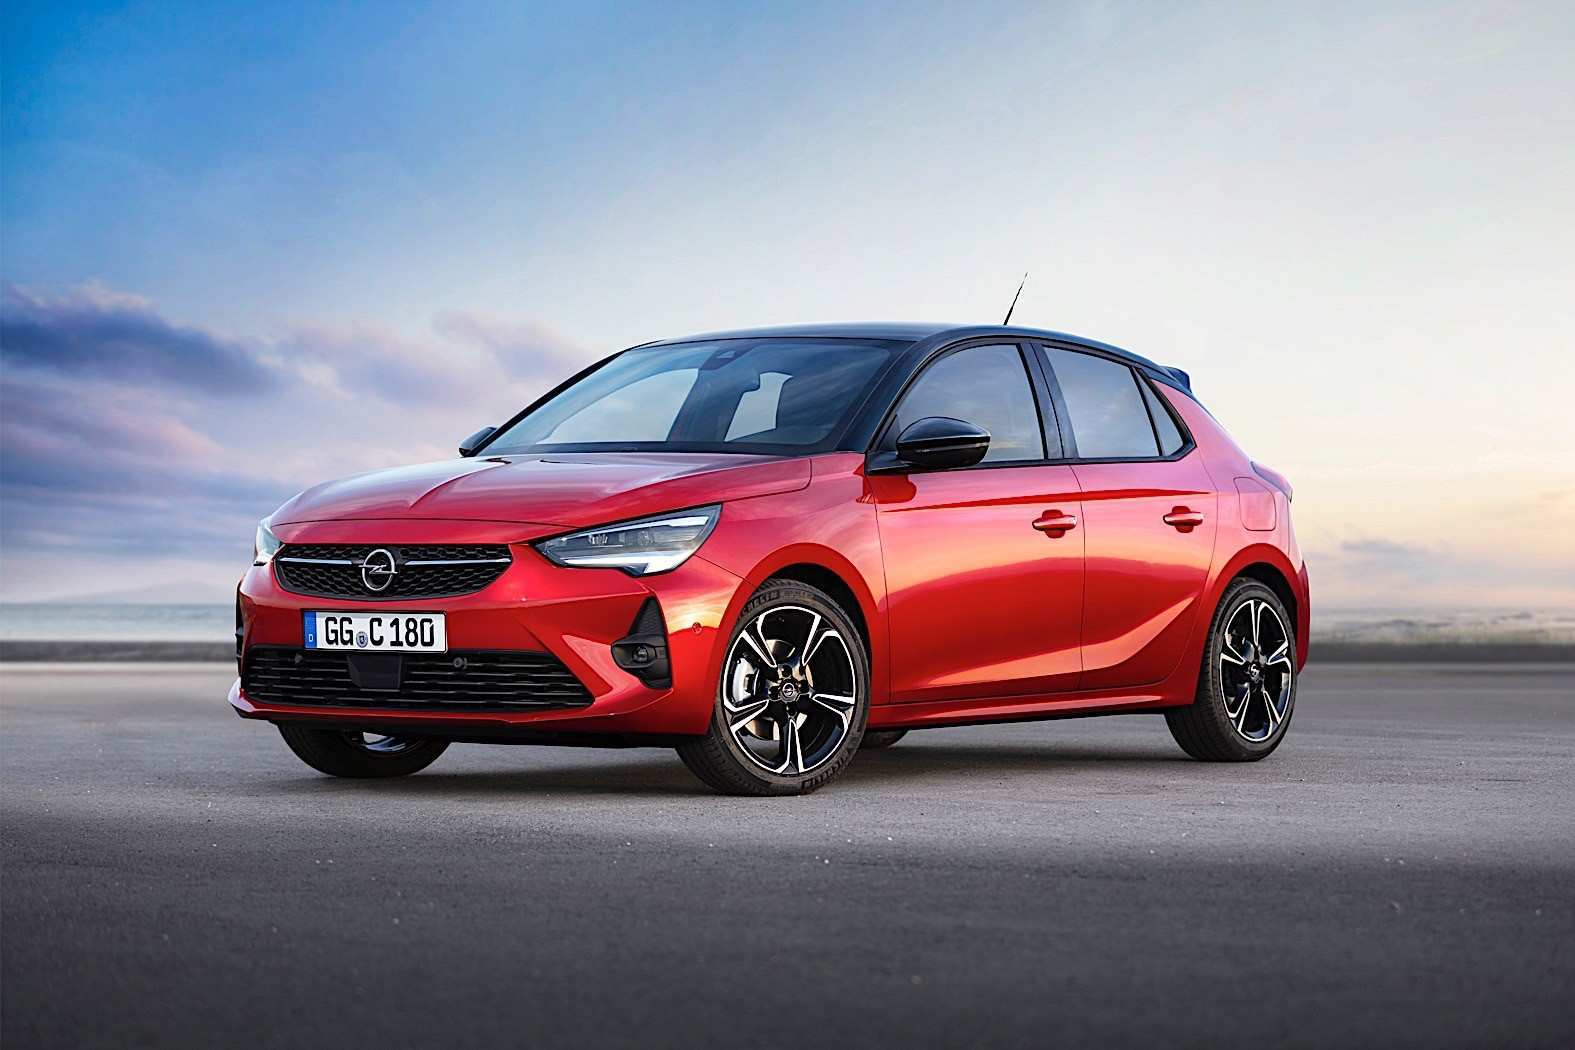 68 New On Star Opel 2020 Redesign and Concept by On Star Opel 2020